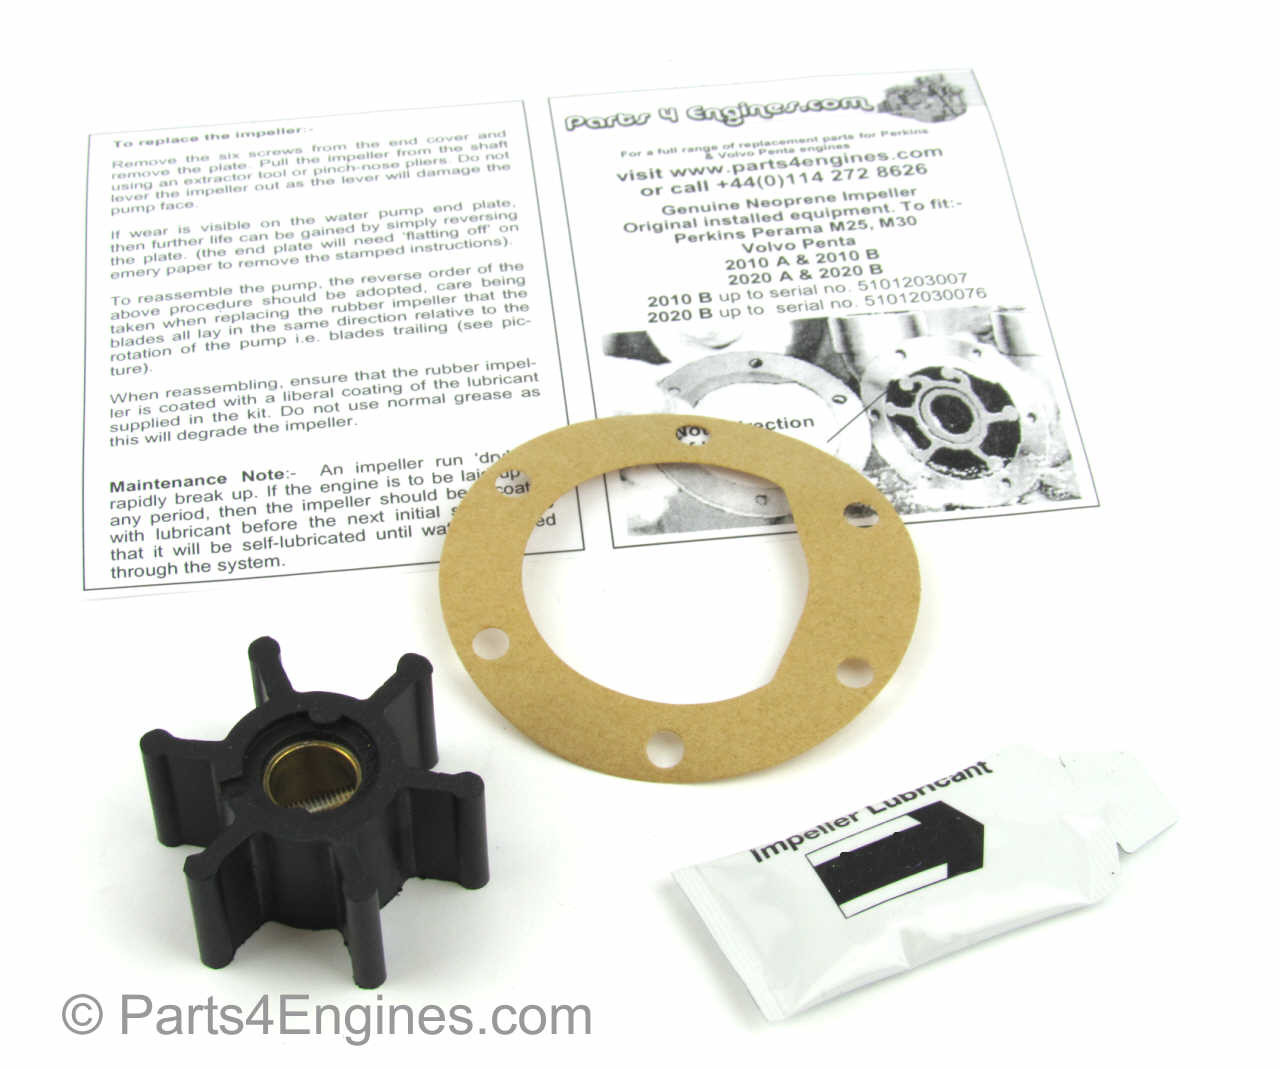 Volvo Penta MD2010 raw water pump impeller kit (early) - Parts4engines.com